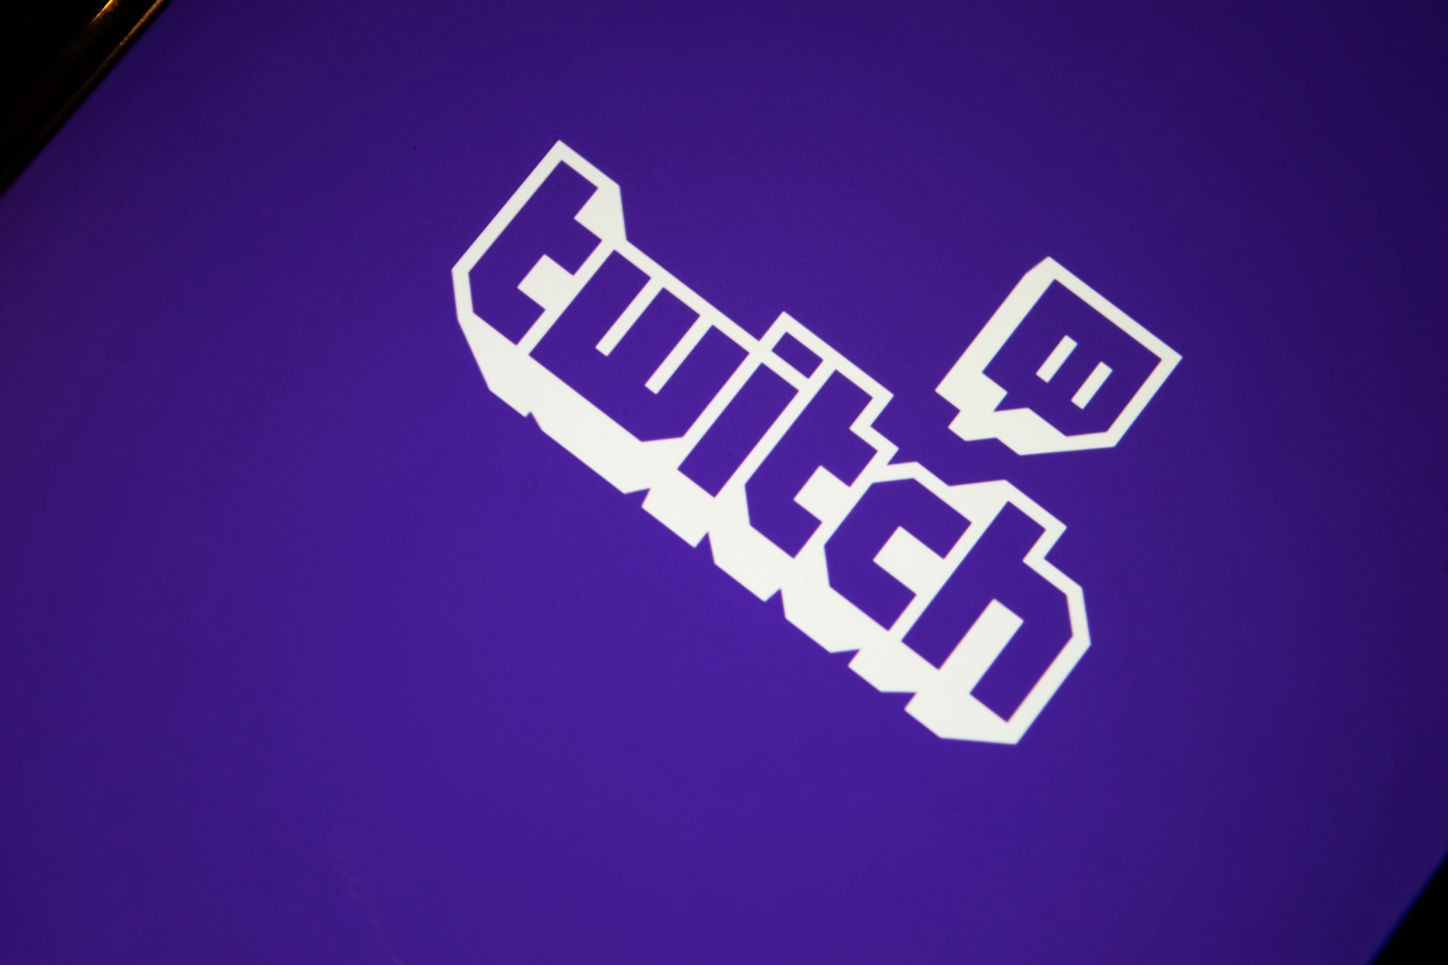 Twitch Flooded with Streams of 'Game of Thrones', Porn, and the